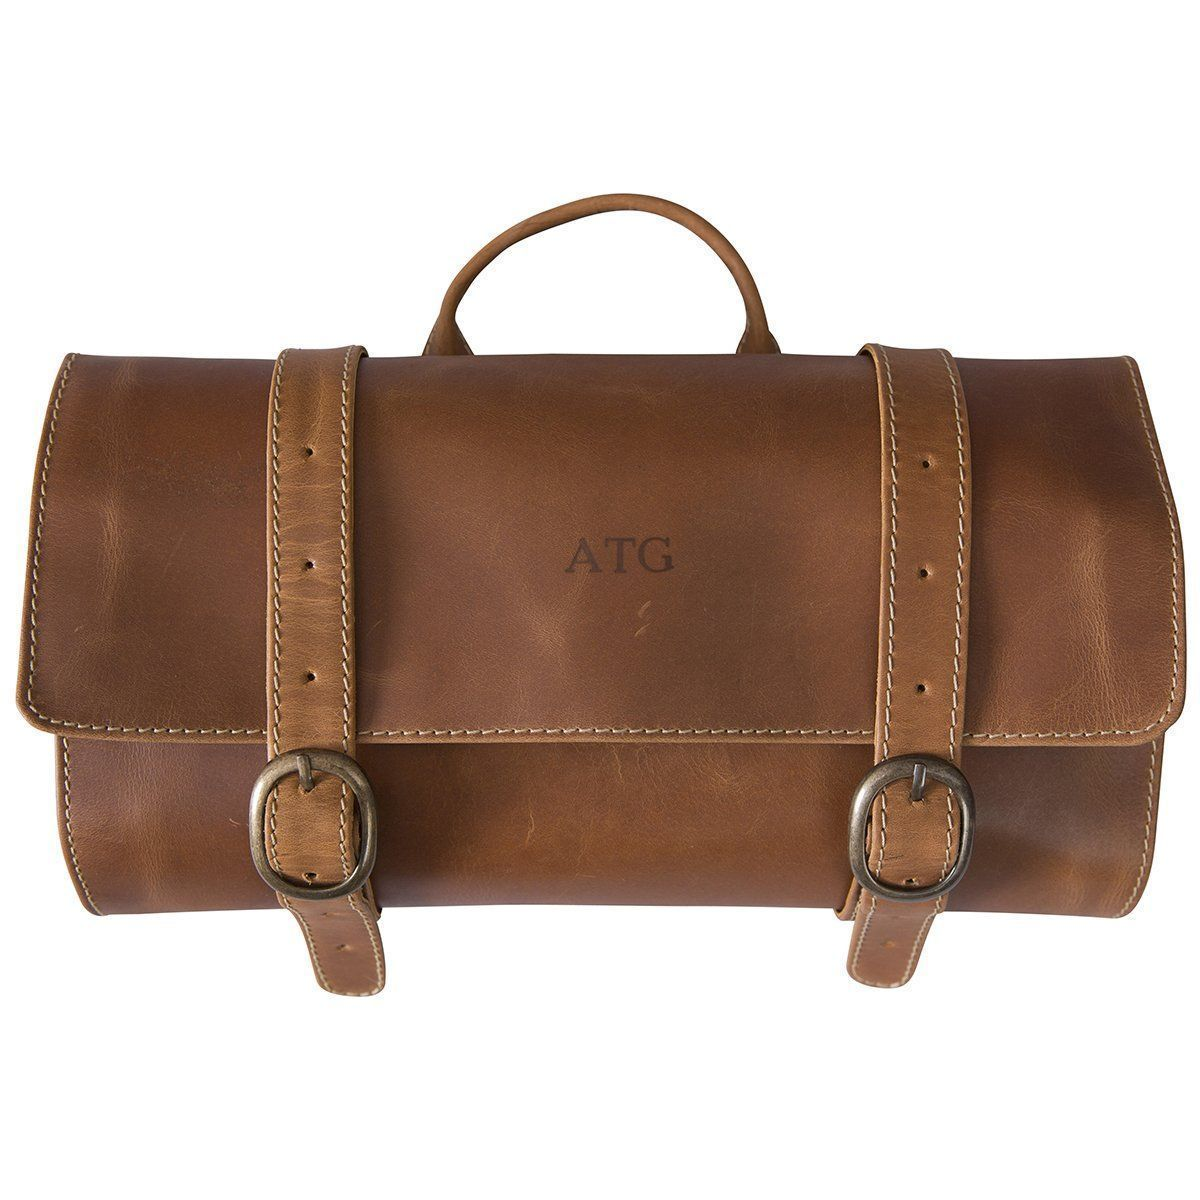 Personalized Borello Distressed Tan Leather Hanging Travel Bag